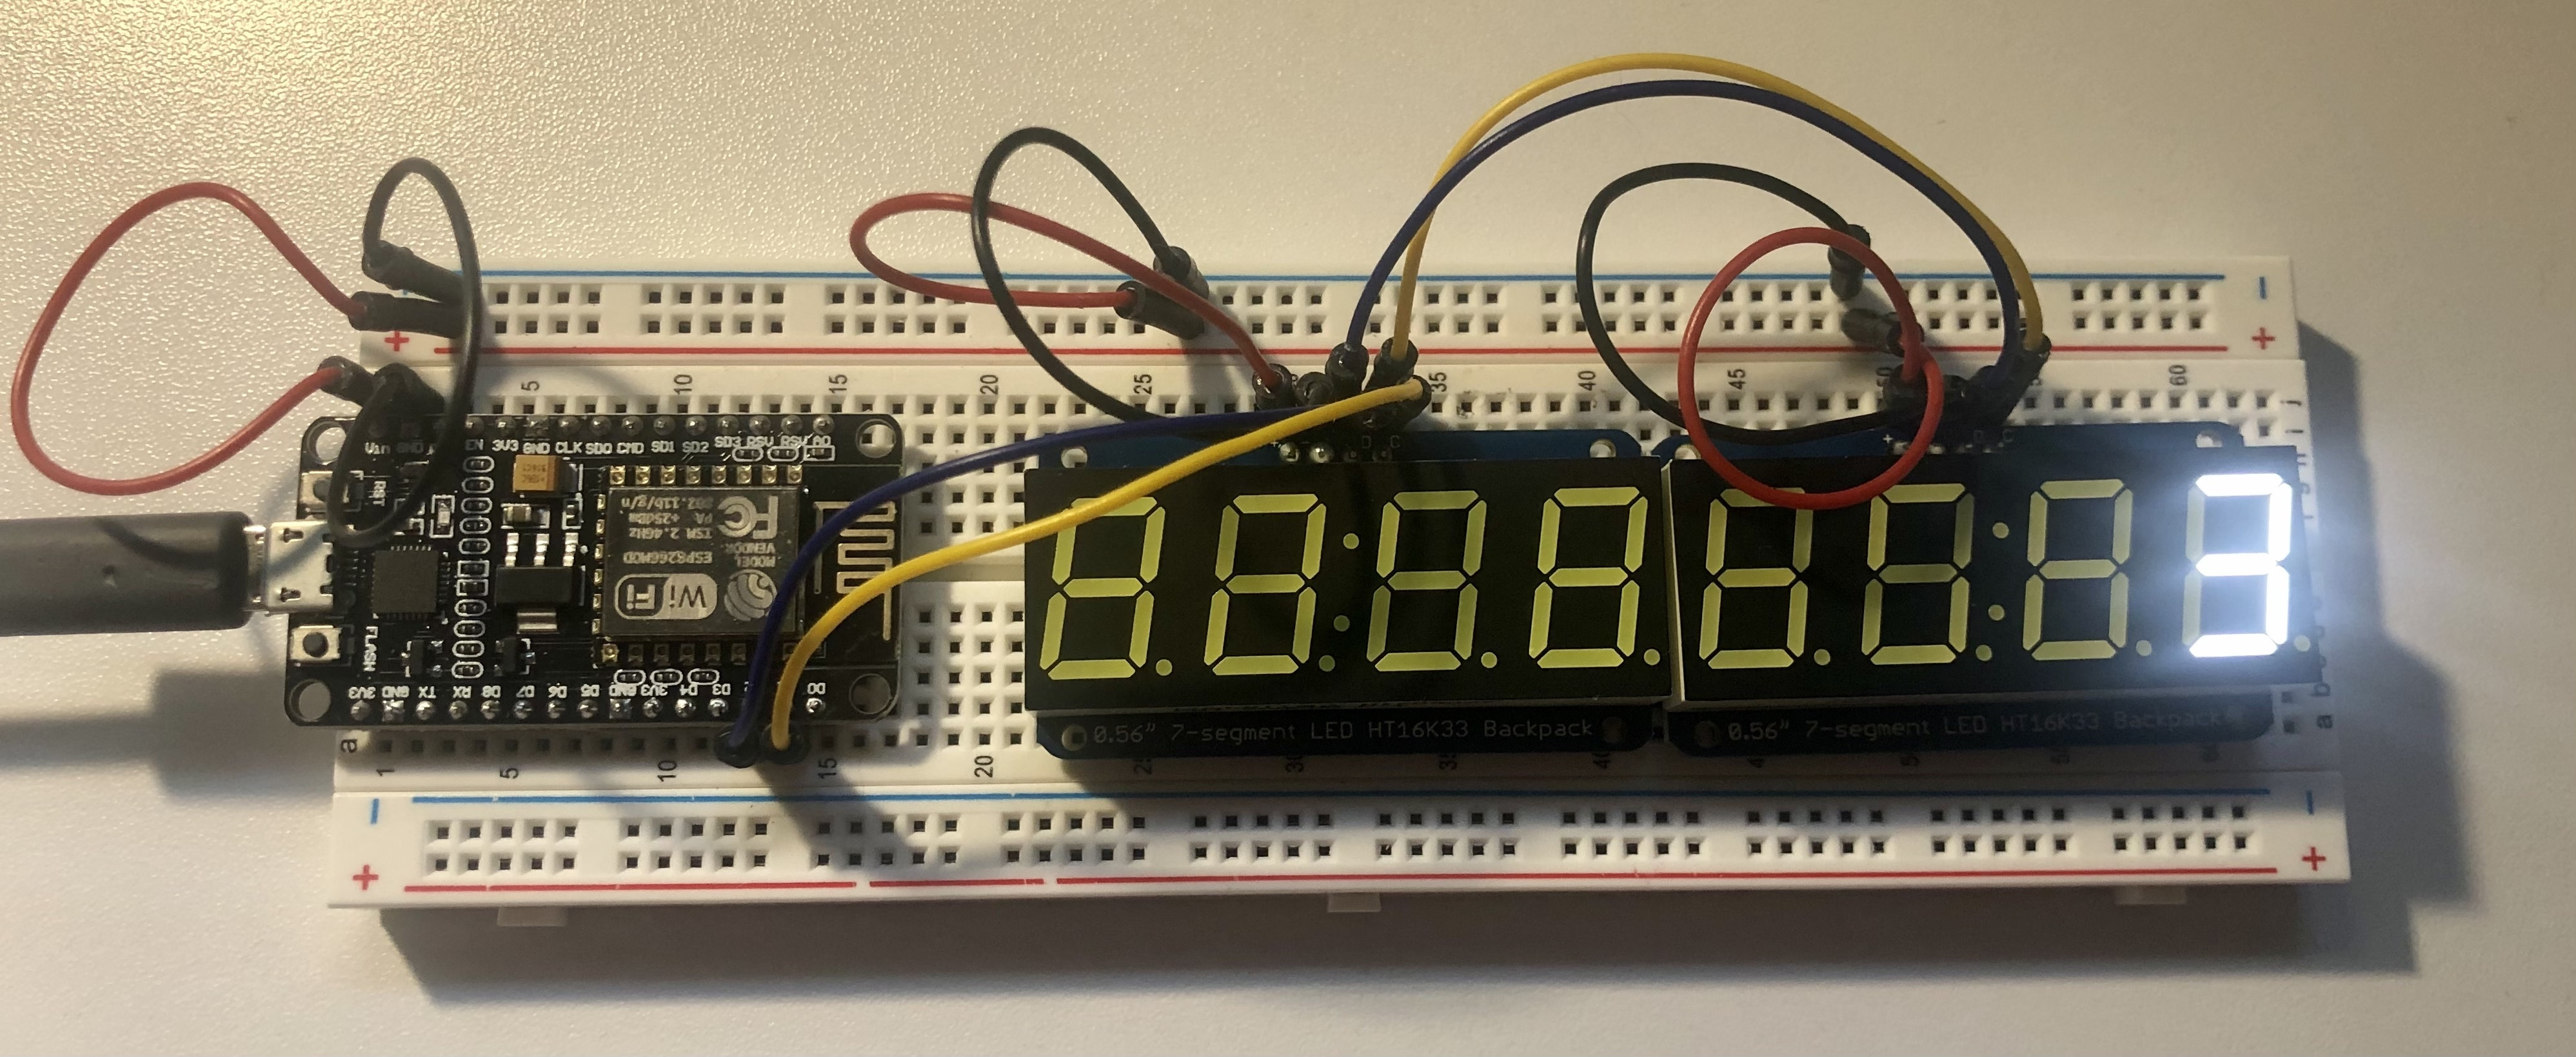 User count display